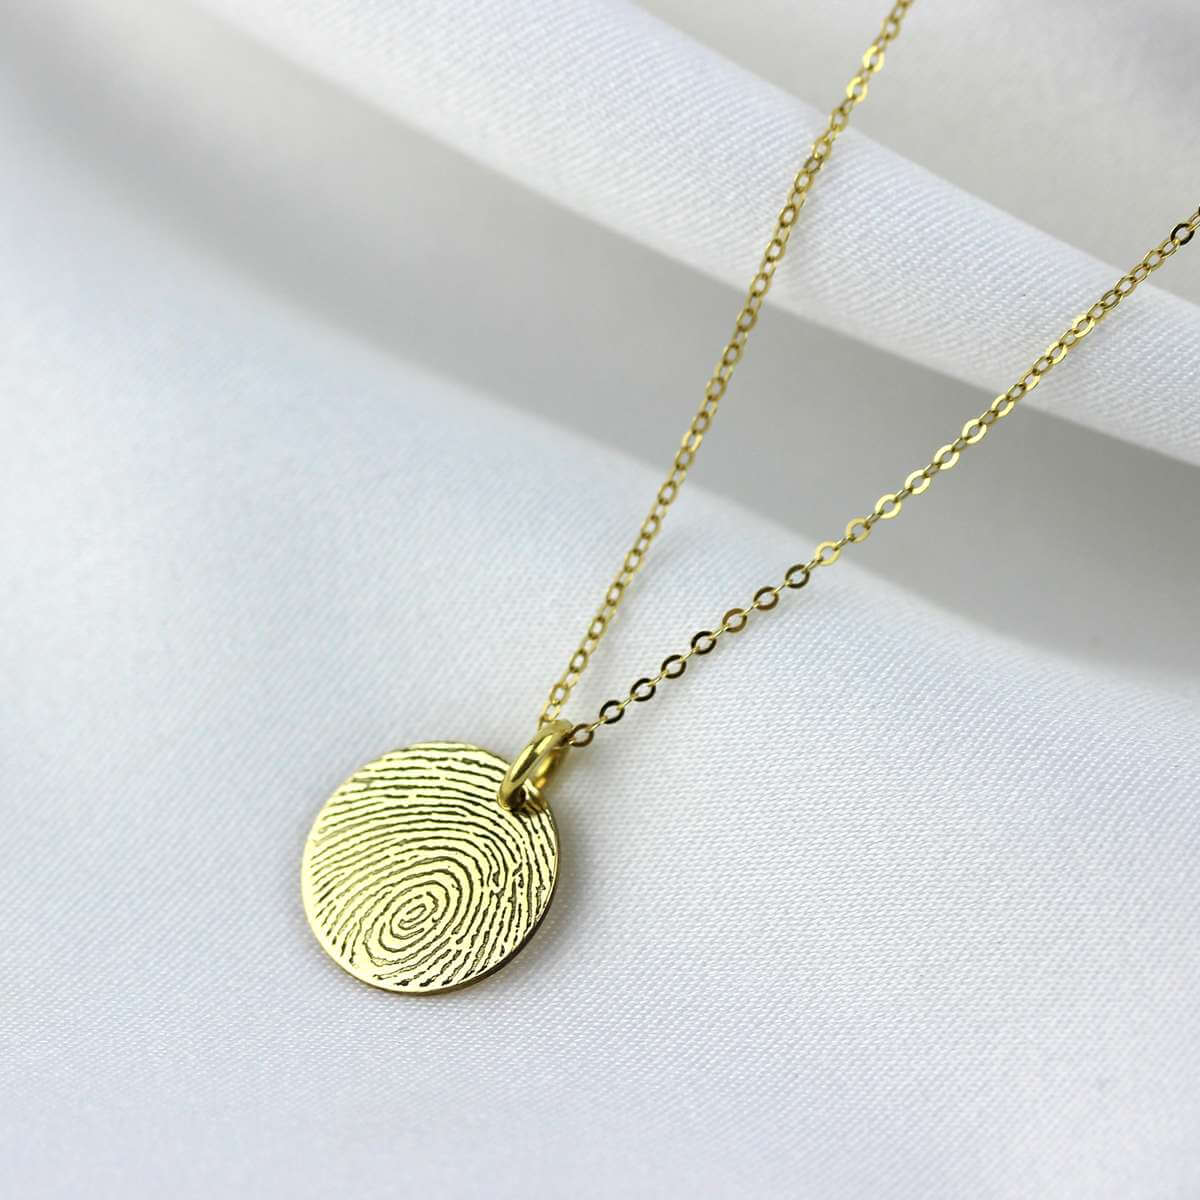 Bespoke 9ct Gold 13mm Round Fingerprint Necklace 16-24 Inch